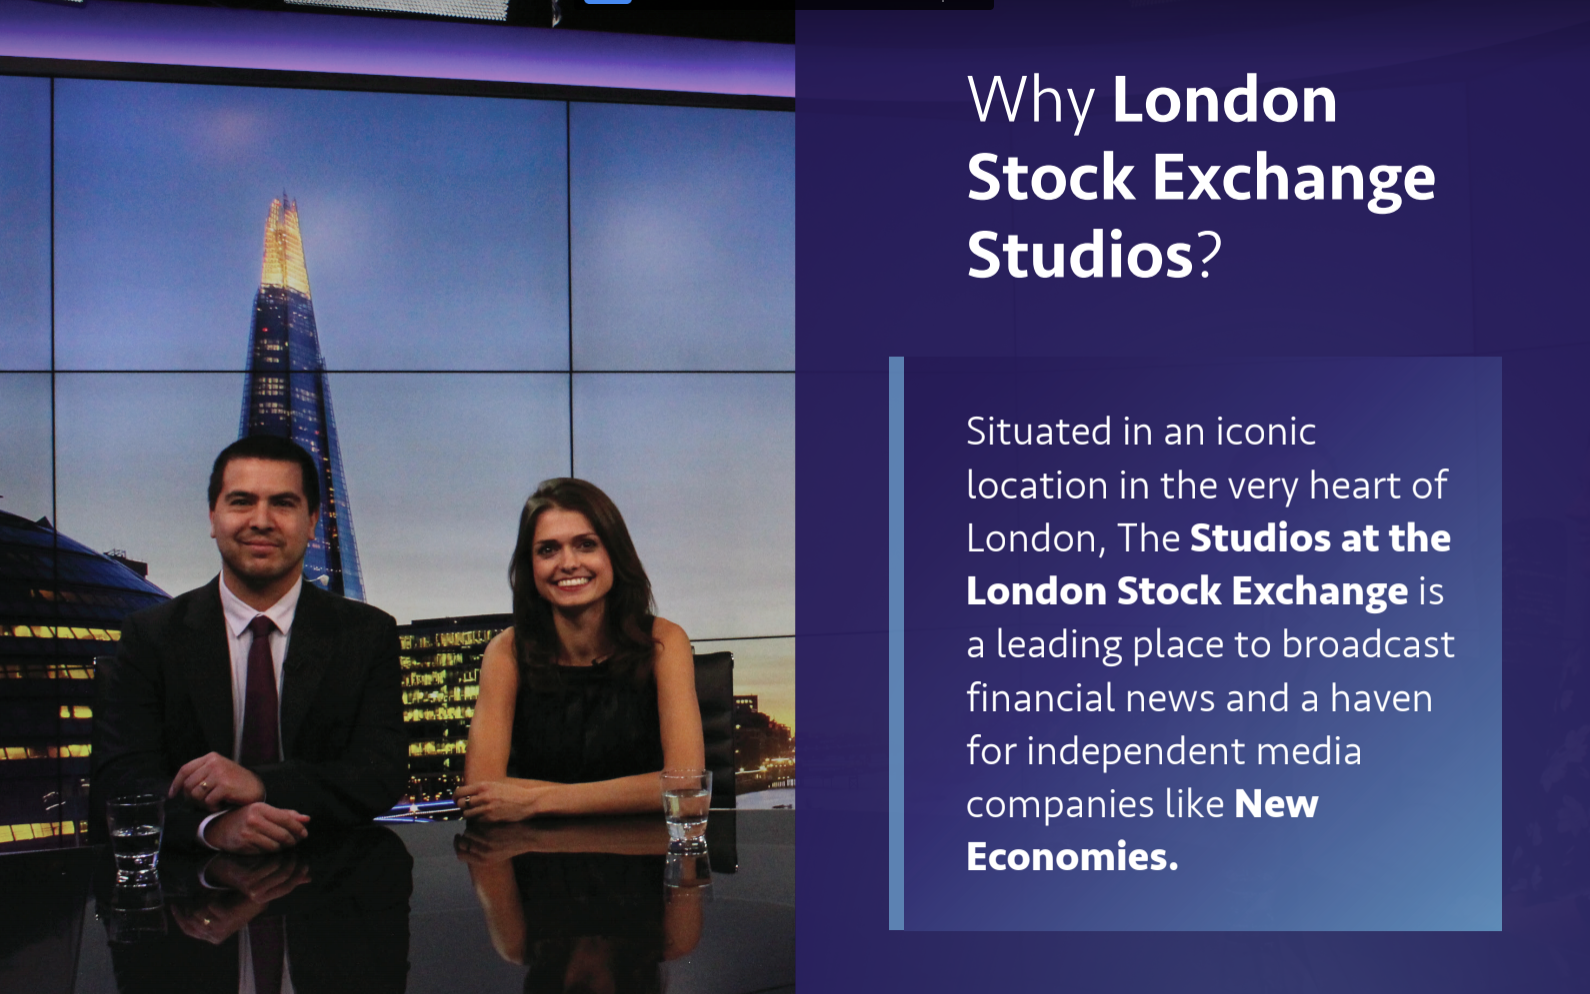 London Stock Exchange Studios